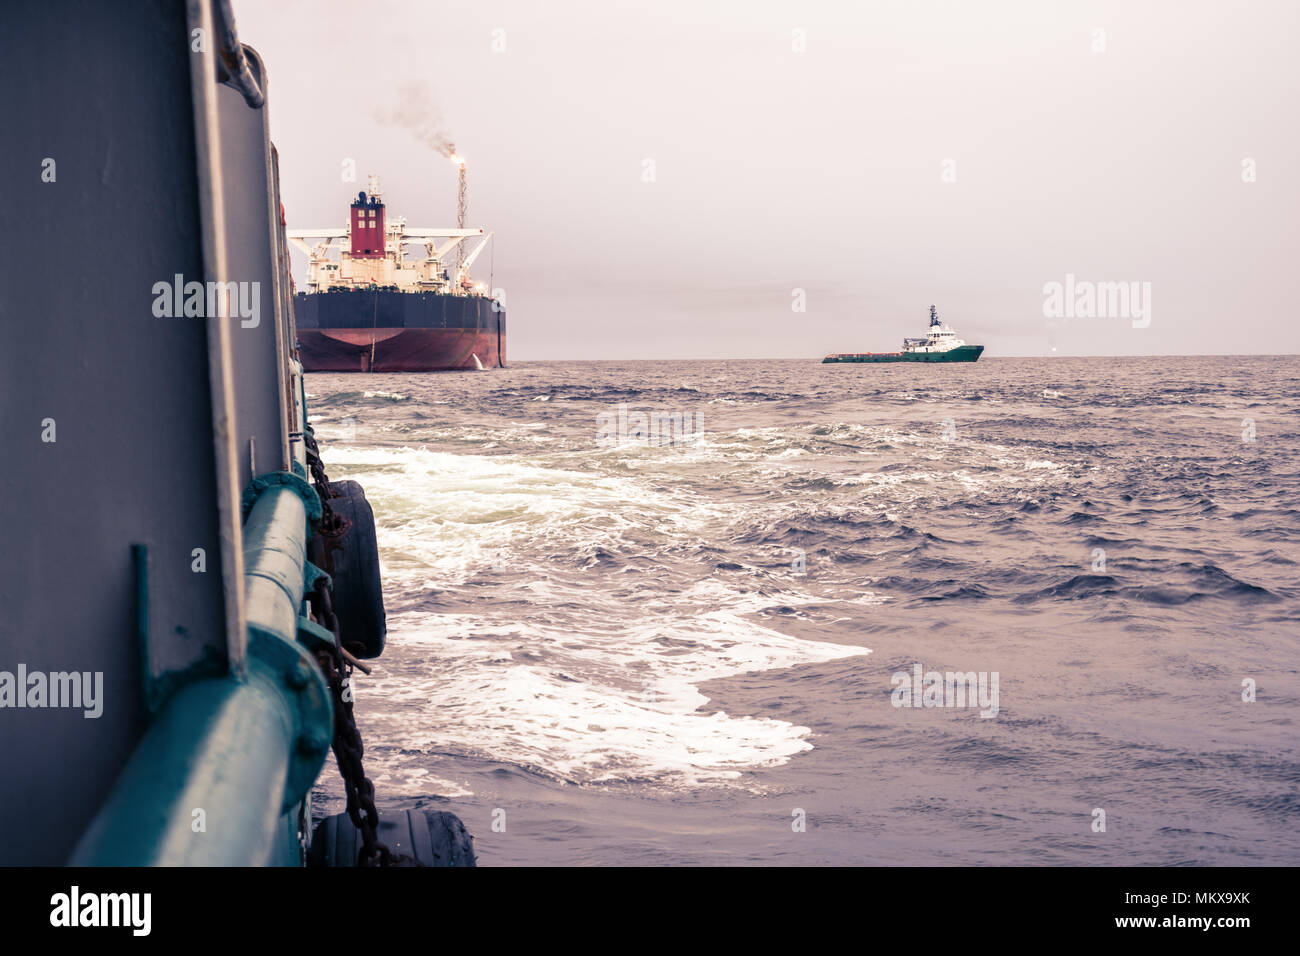 Anchor-handling Tug Supply AHTS vessel at work with FPSO tanker Stock Photo